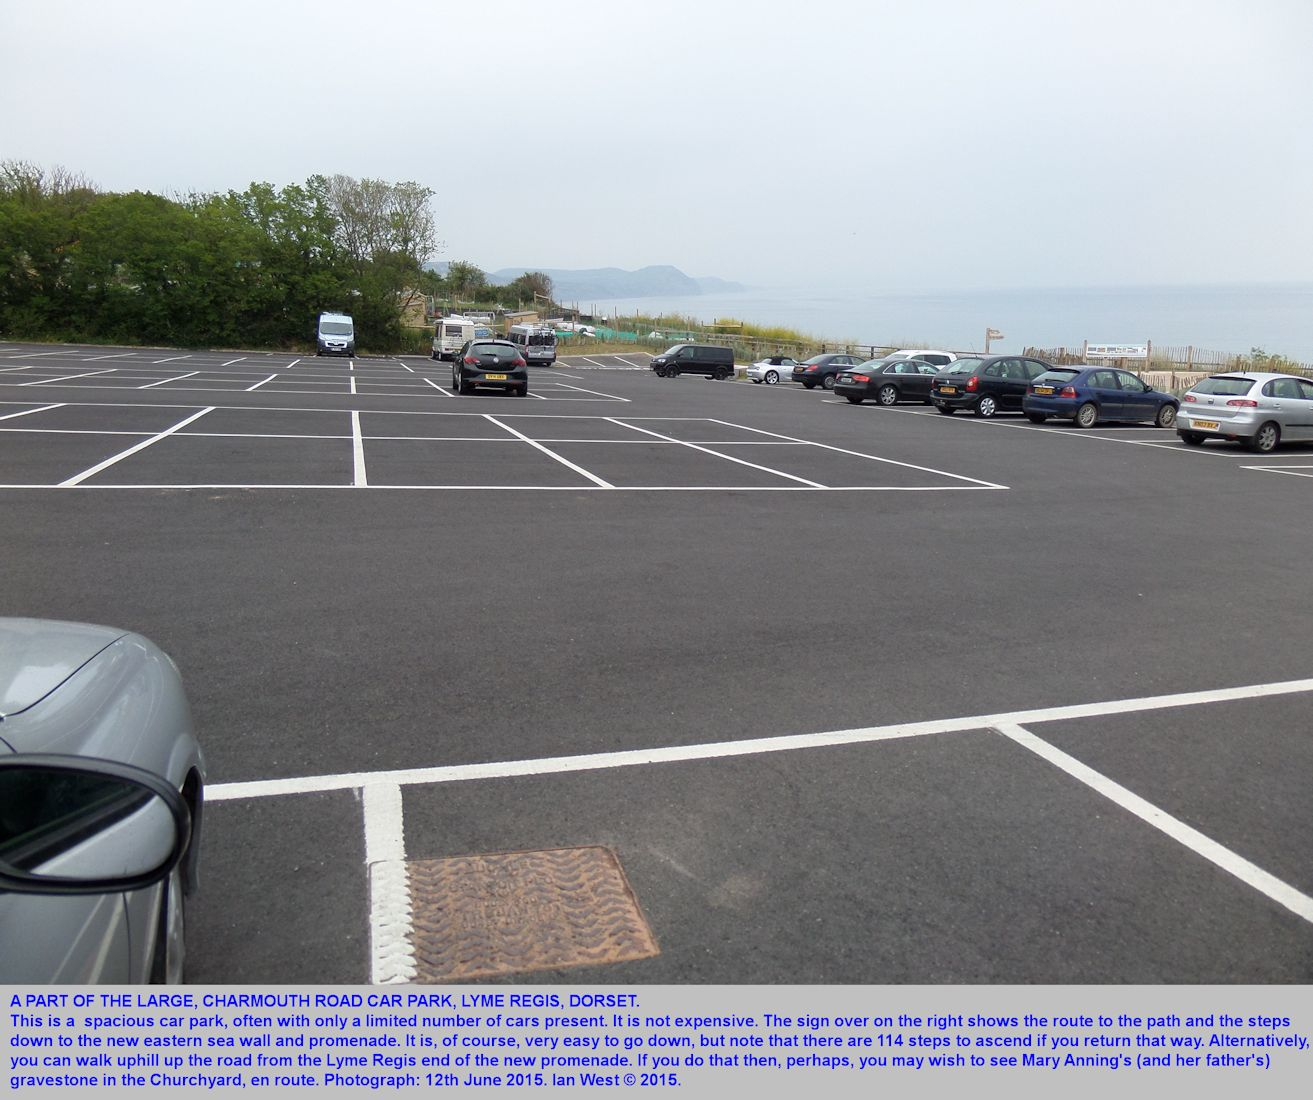 The Charmouth Road Car Park, on the eastern side of Lyme Regis, Dorset, in June 2015